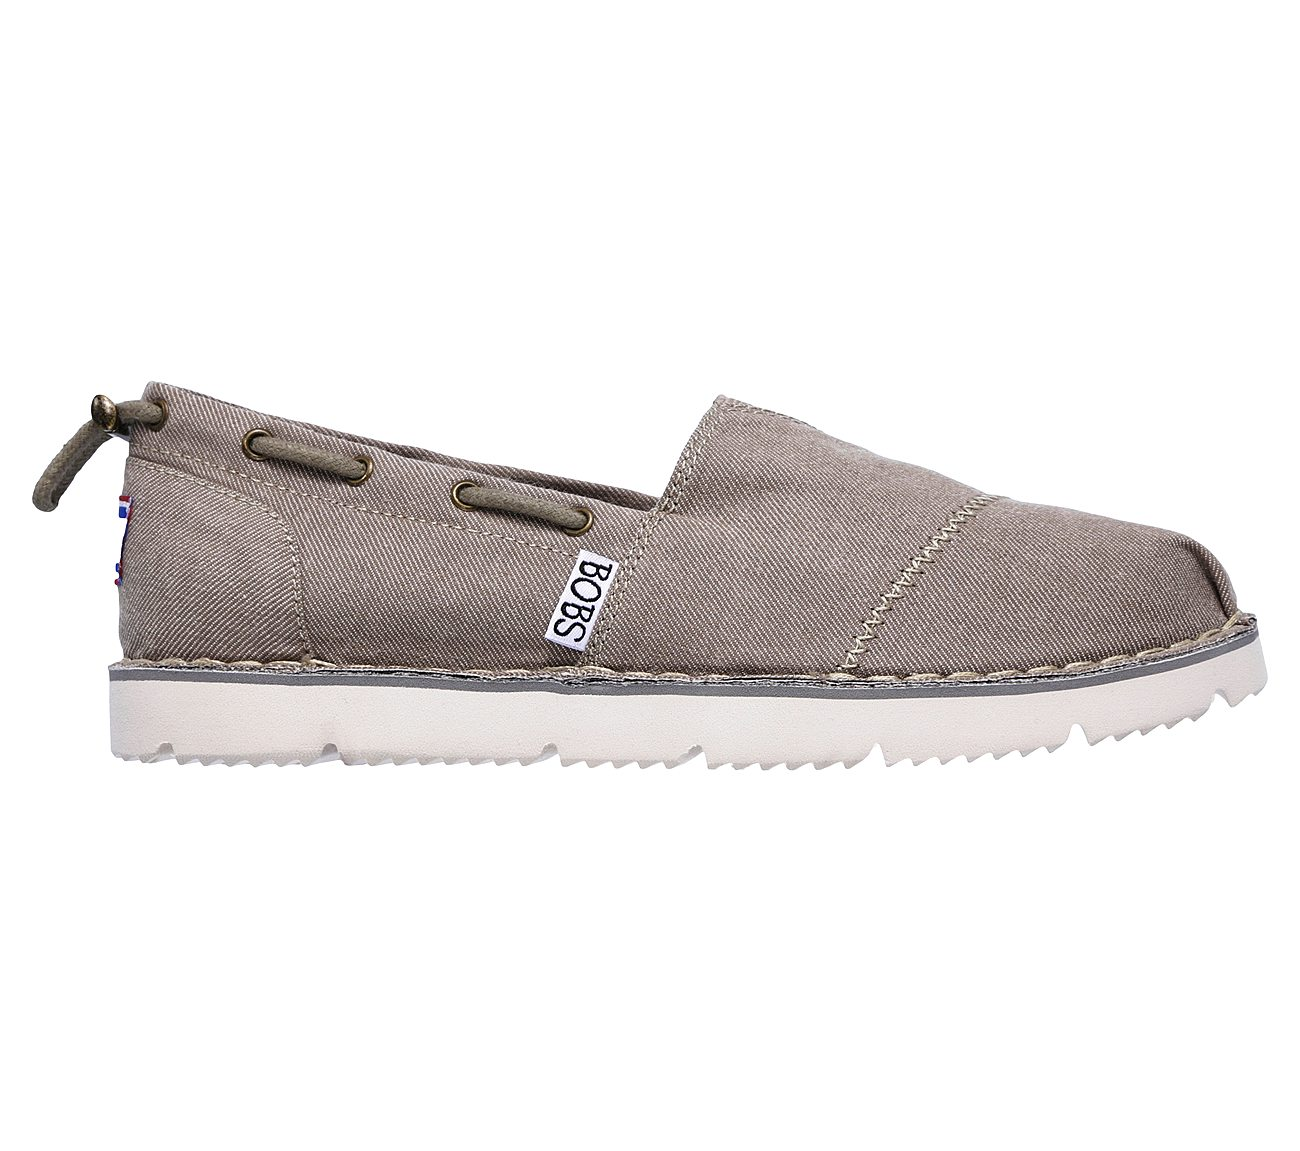 15f9a482b11 Buy SKECHERS BOBS Chill Flex - New Groove BOBS Shoes only  47.00